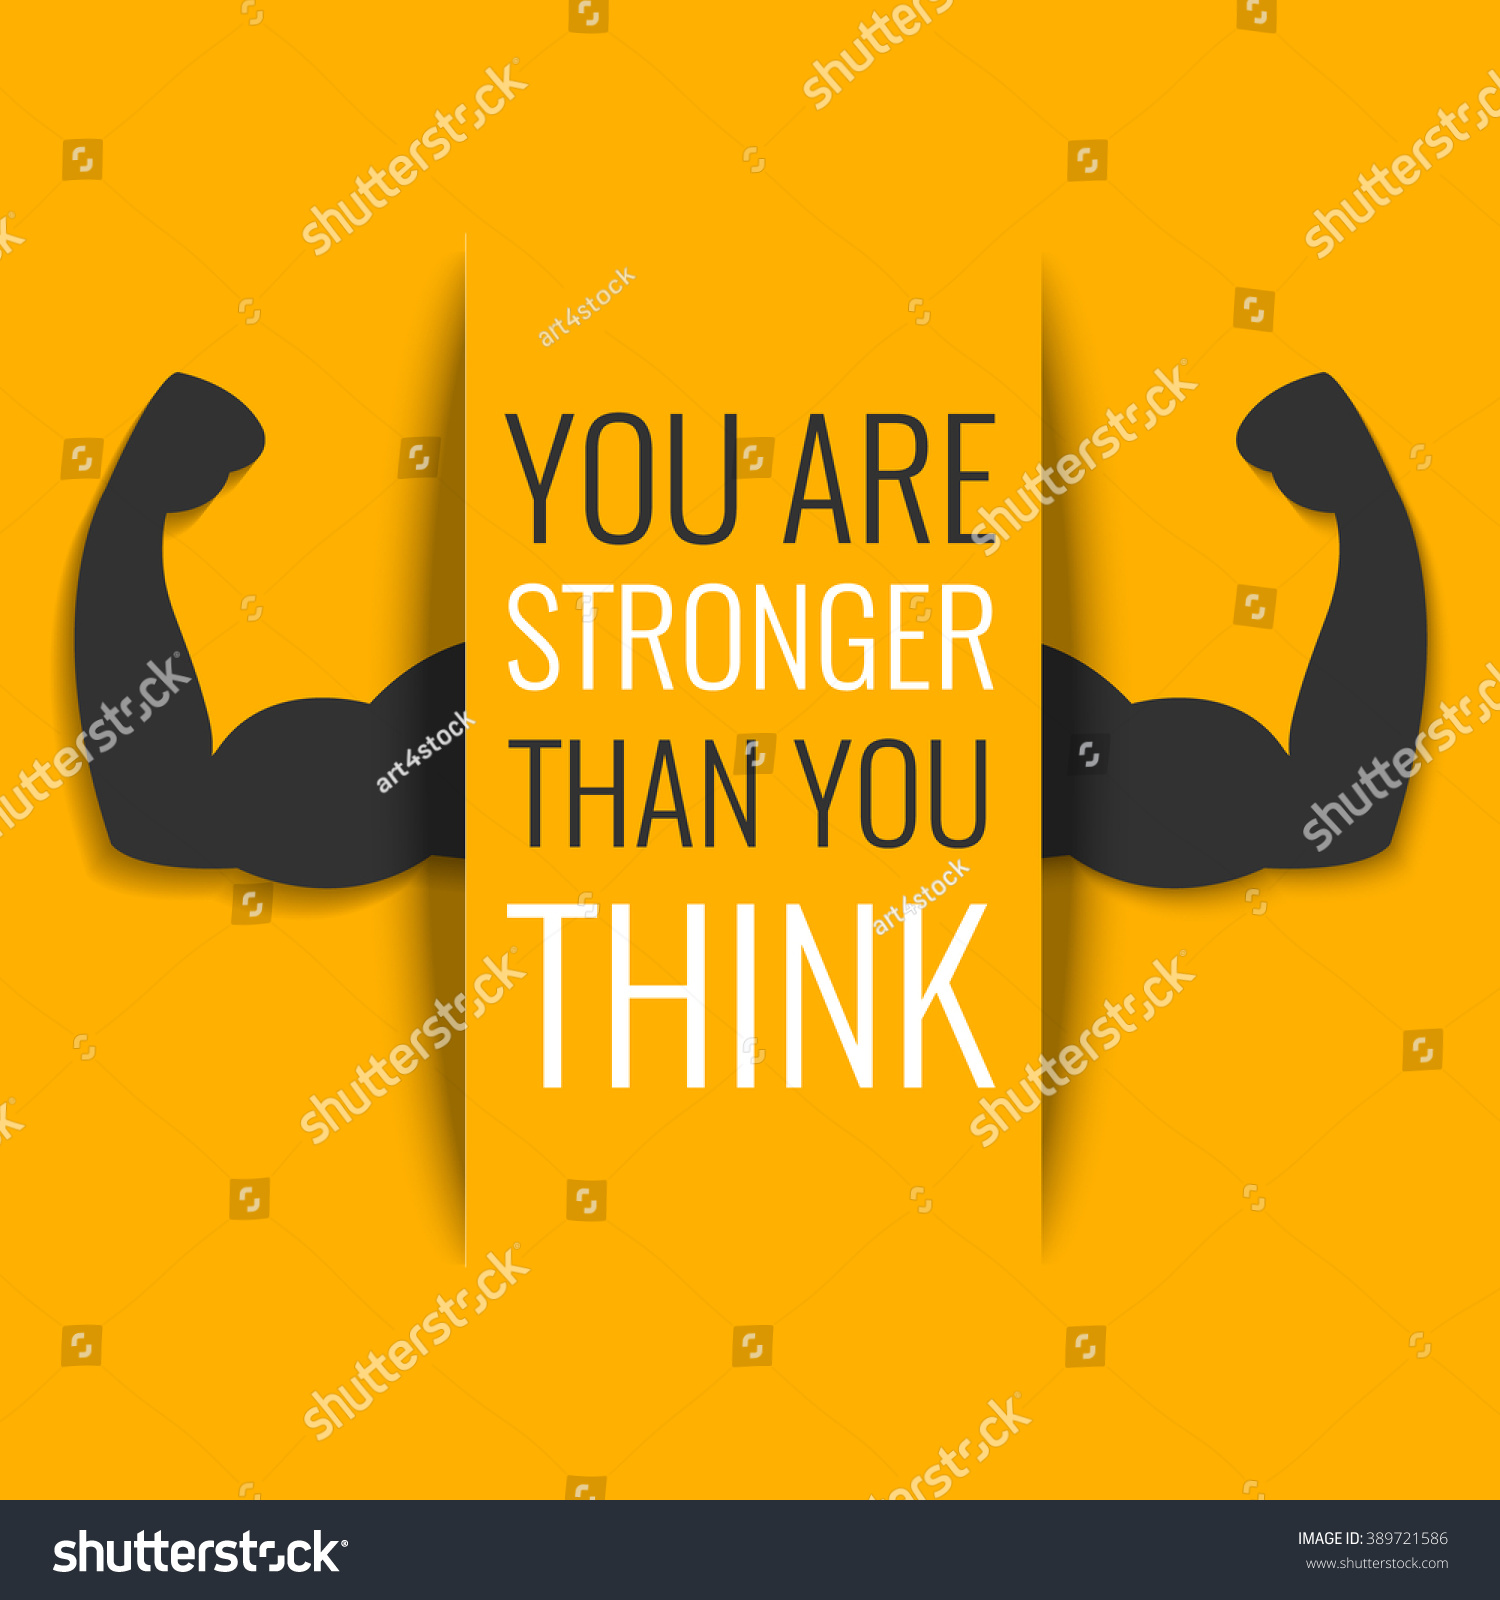 You Stronger Than You Think Inspirational Stockvector Rechtenvrij